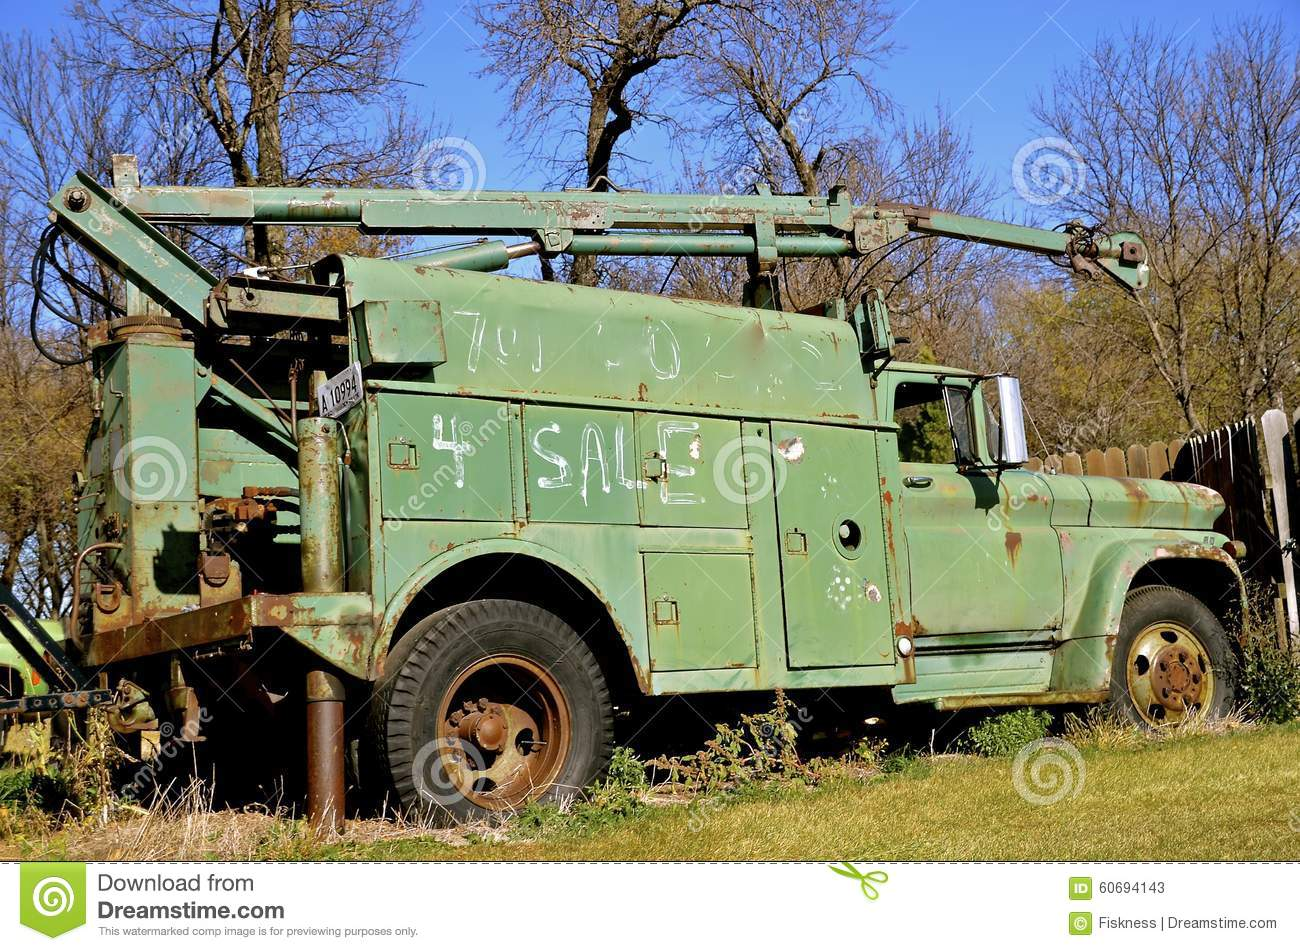 Old Truck For Sale >> Abandoned Old Utility Truck Stock Photo - Image: 60694143